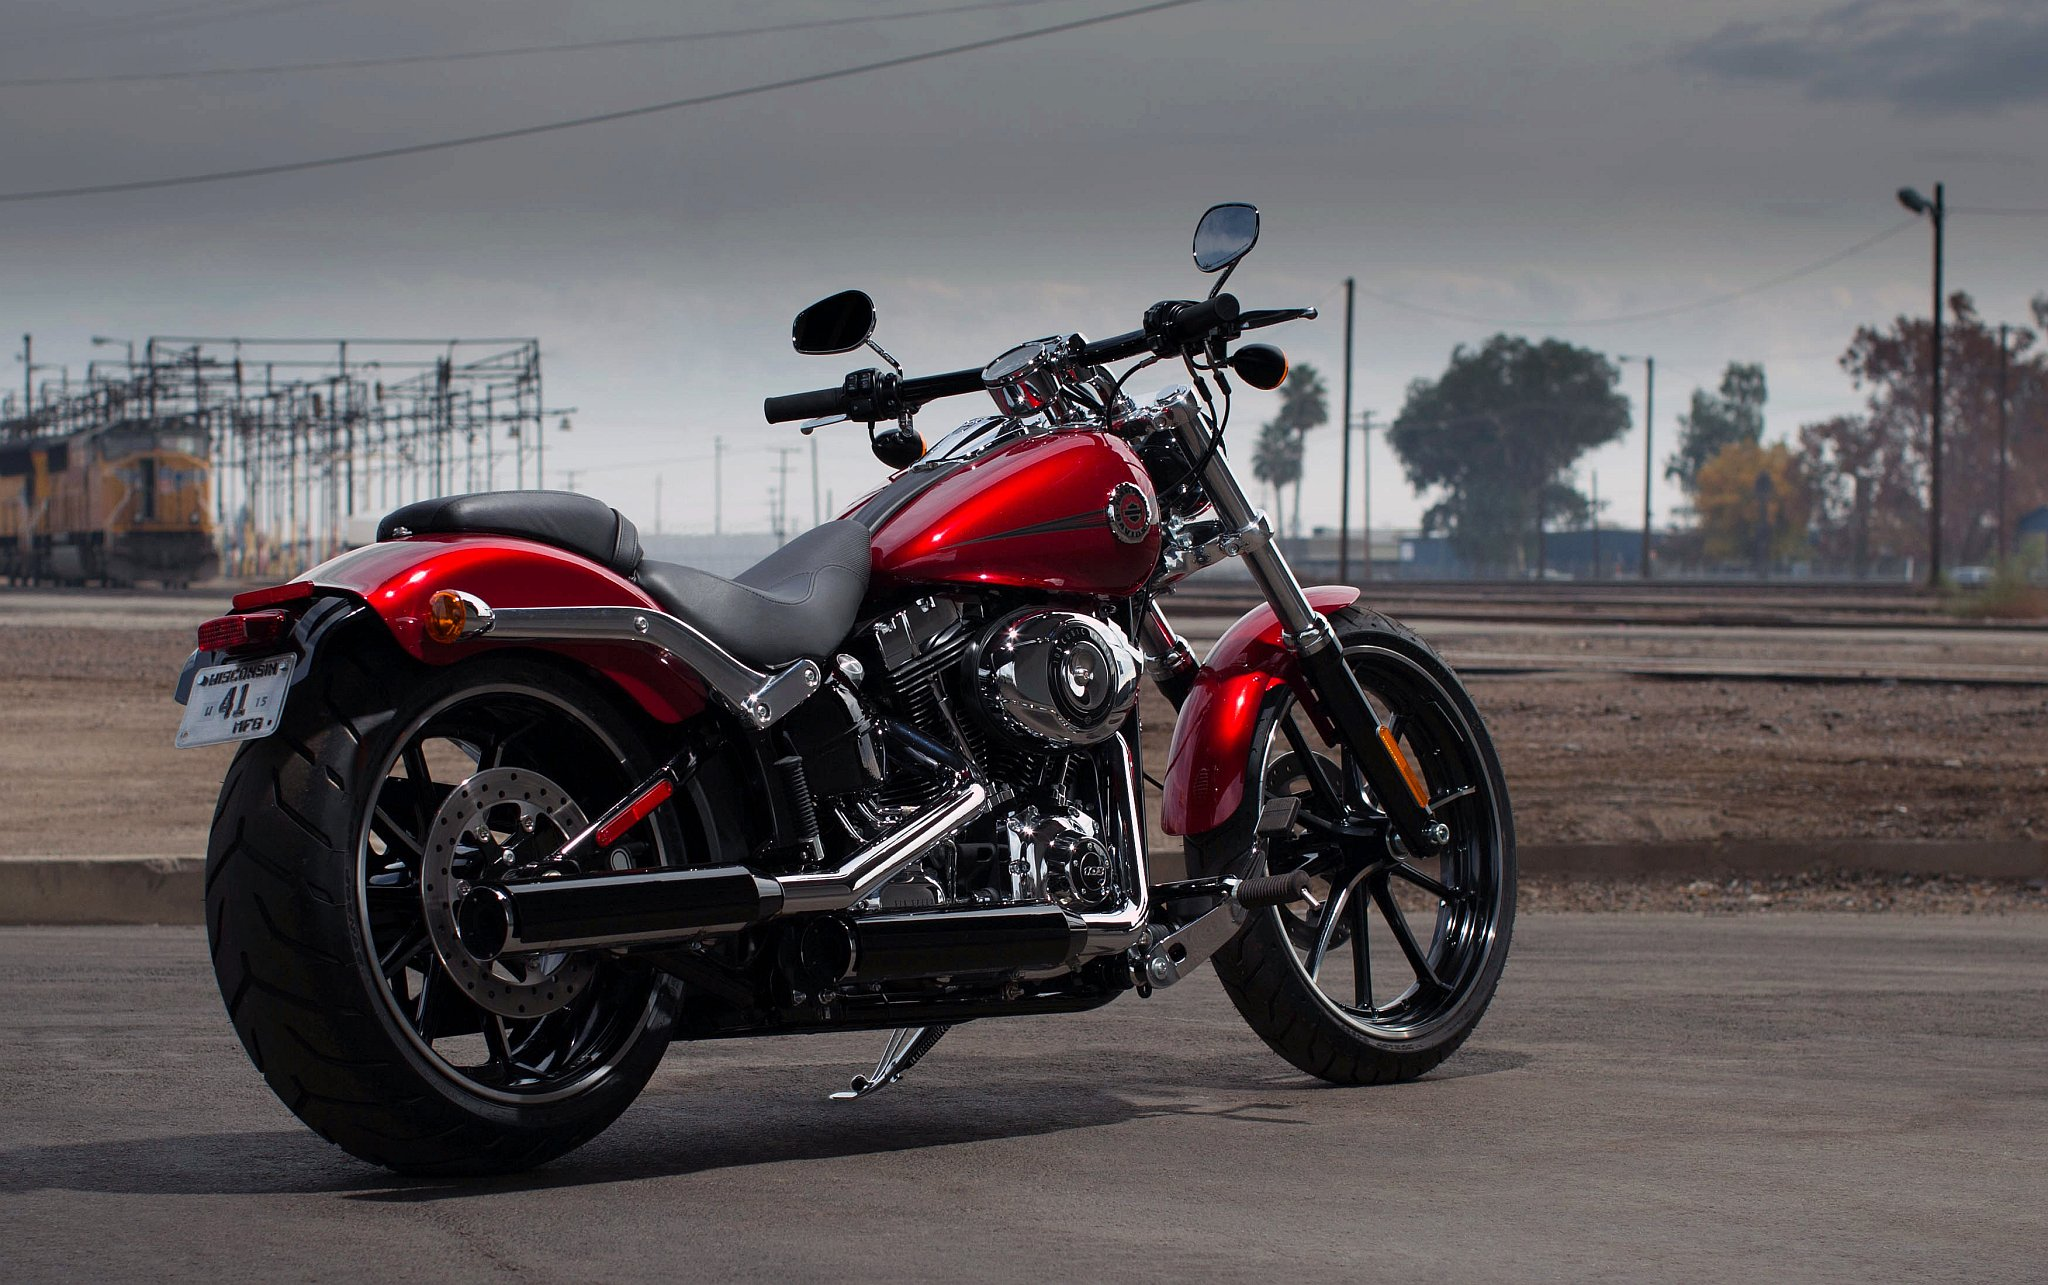 Harley Davidson Financials And Product Recalls Northwest